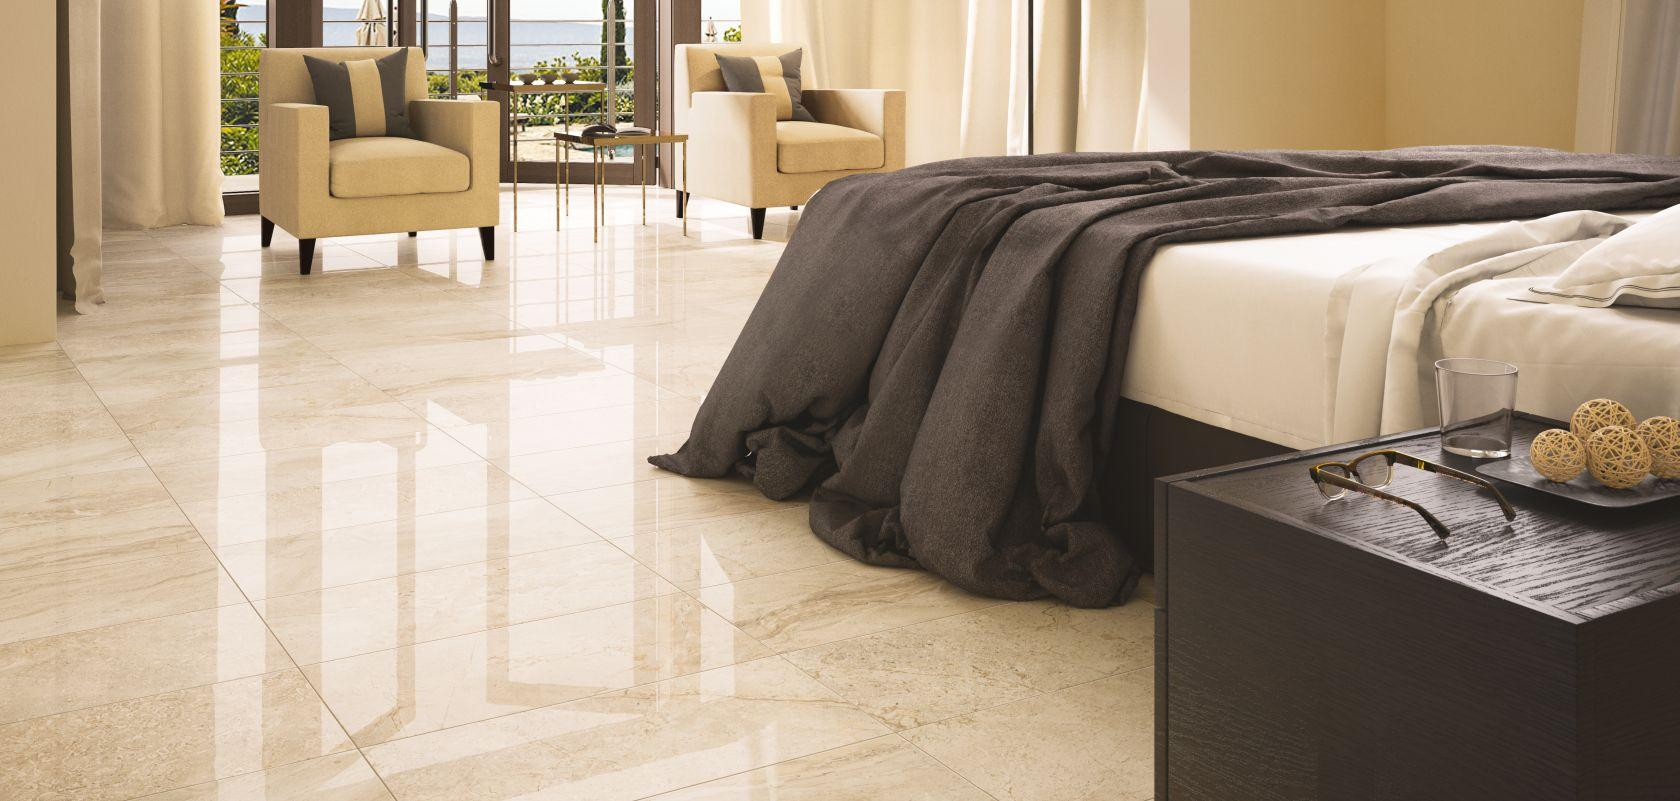 Blog - Choosing the Right Bedroom Floor Tiles